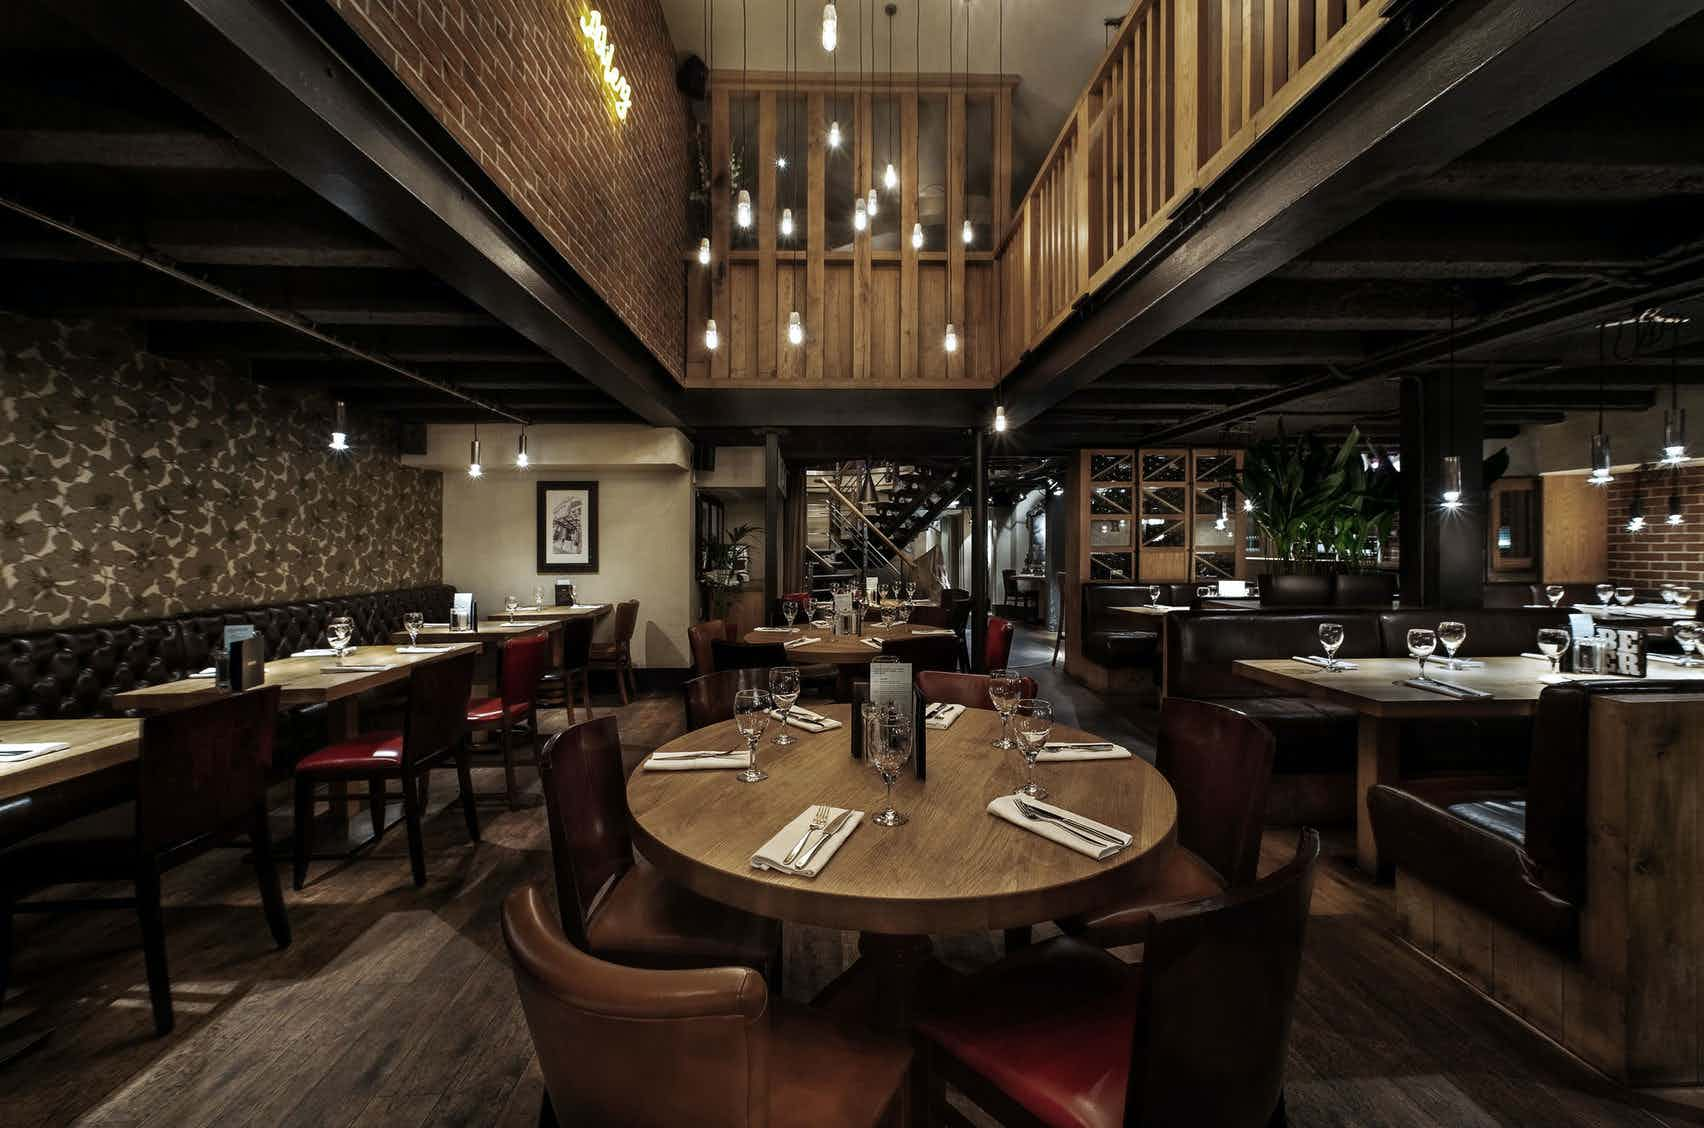 Exclusive Hire, Lower Ground Floor, The Grill on the Alley